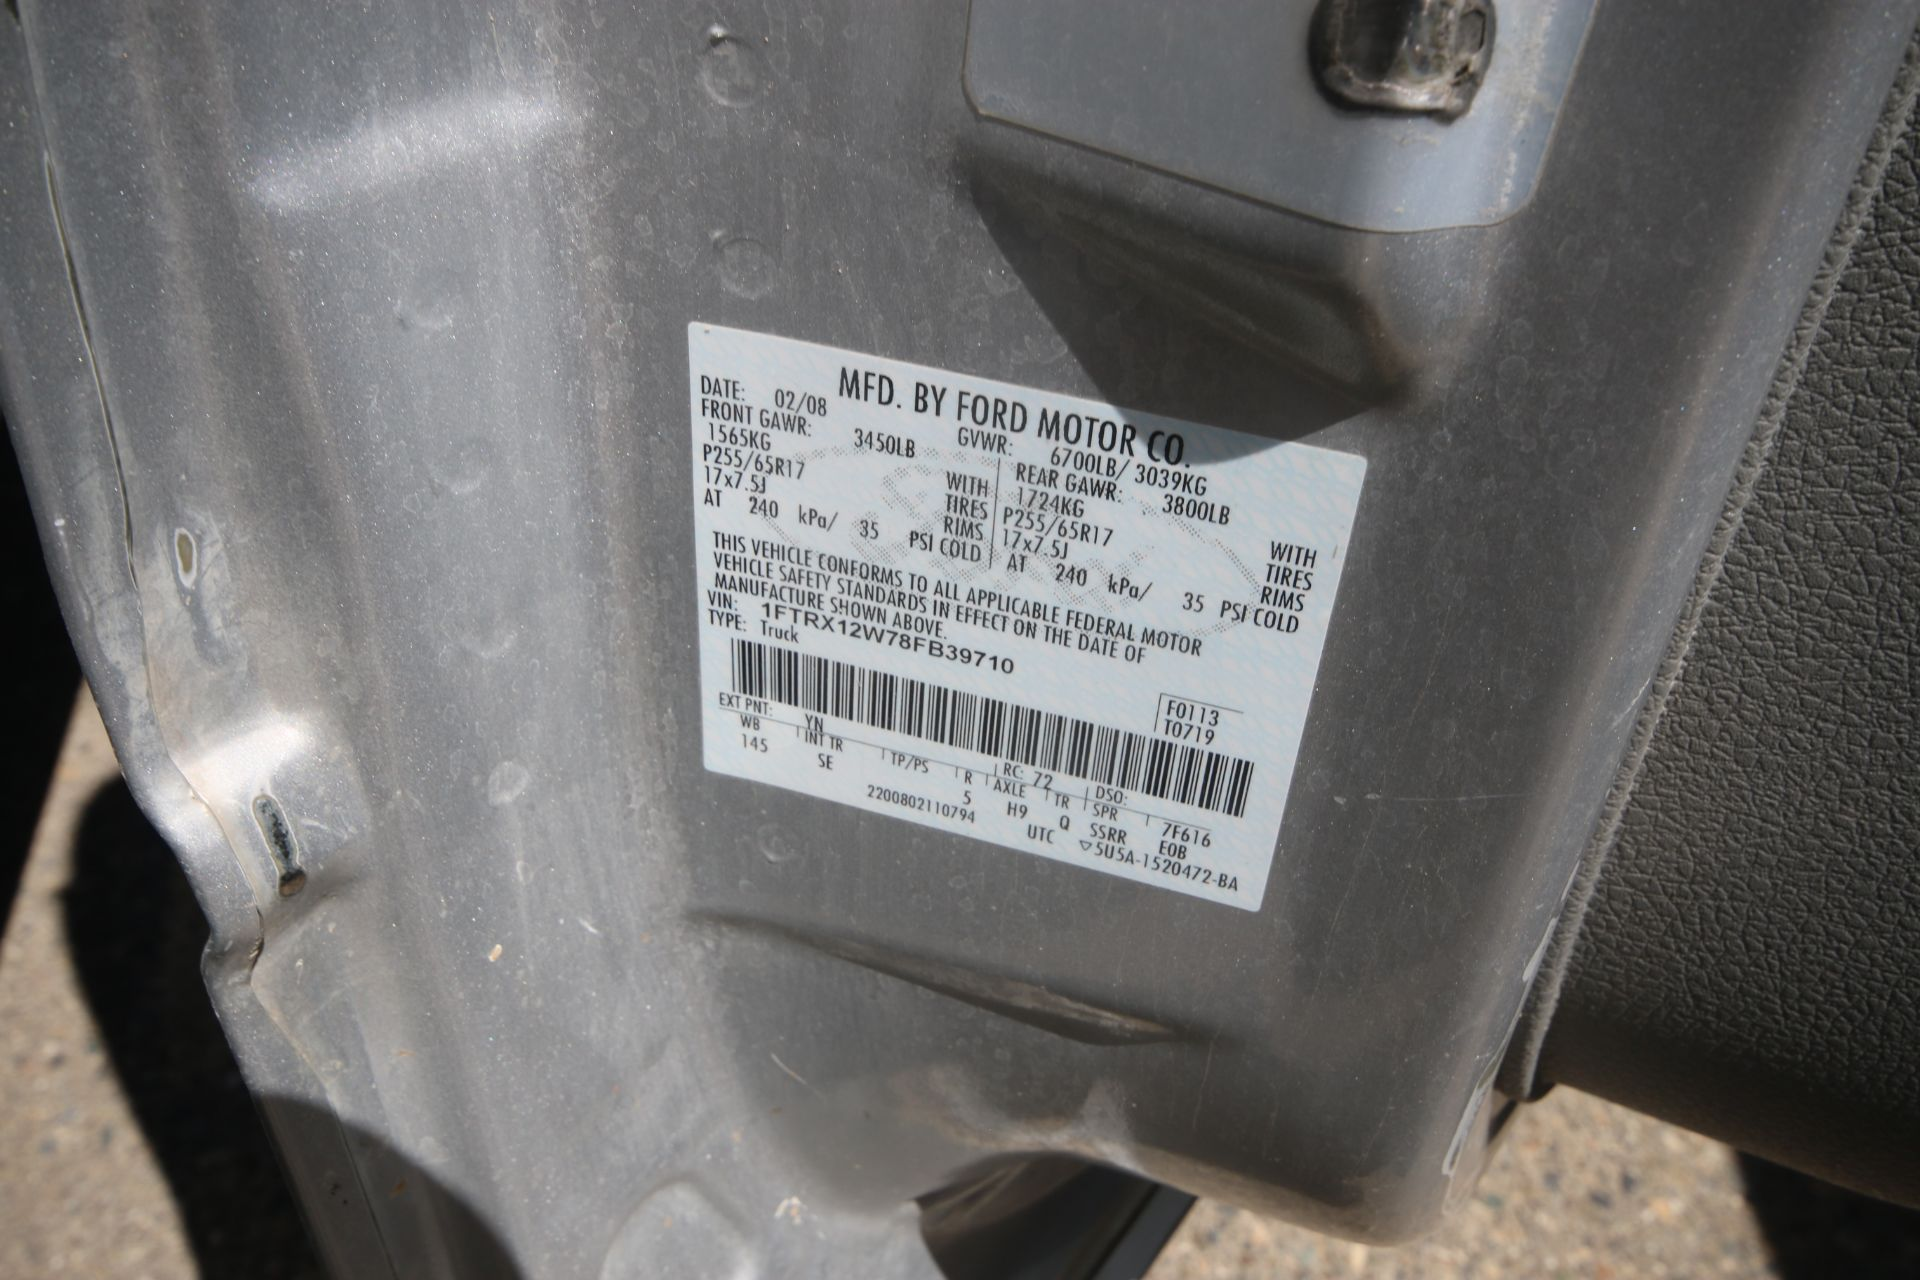 2008 Ford F150 Pick Up Truck, VIN #: 1FTRX12W7BFB9710, with 214,817 Miles, Started Up as of 06/24/ - Image 18 of 24